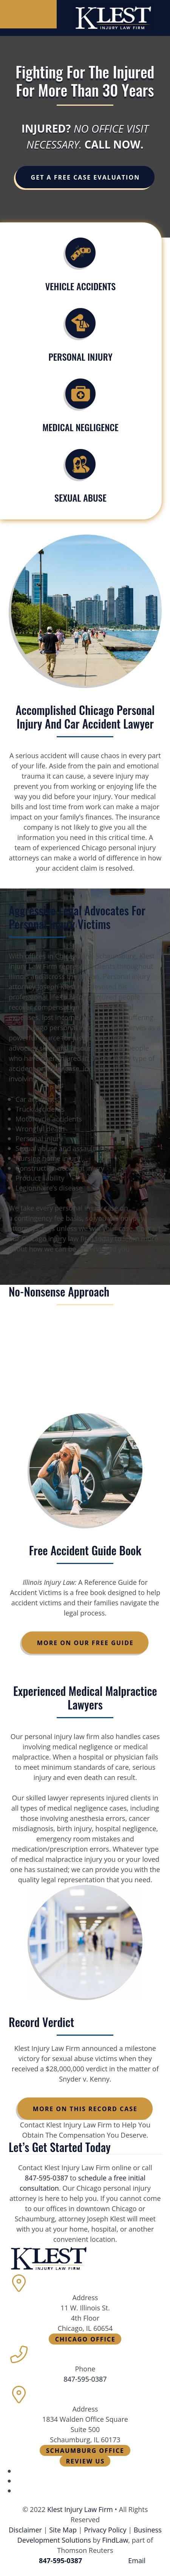 Klest Injury Law Firm - Chicago IL Lawyers